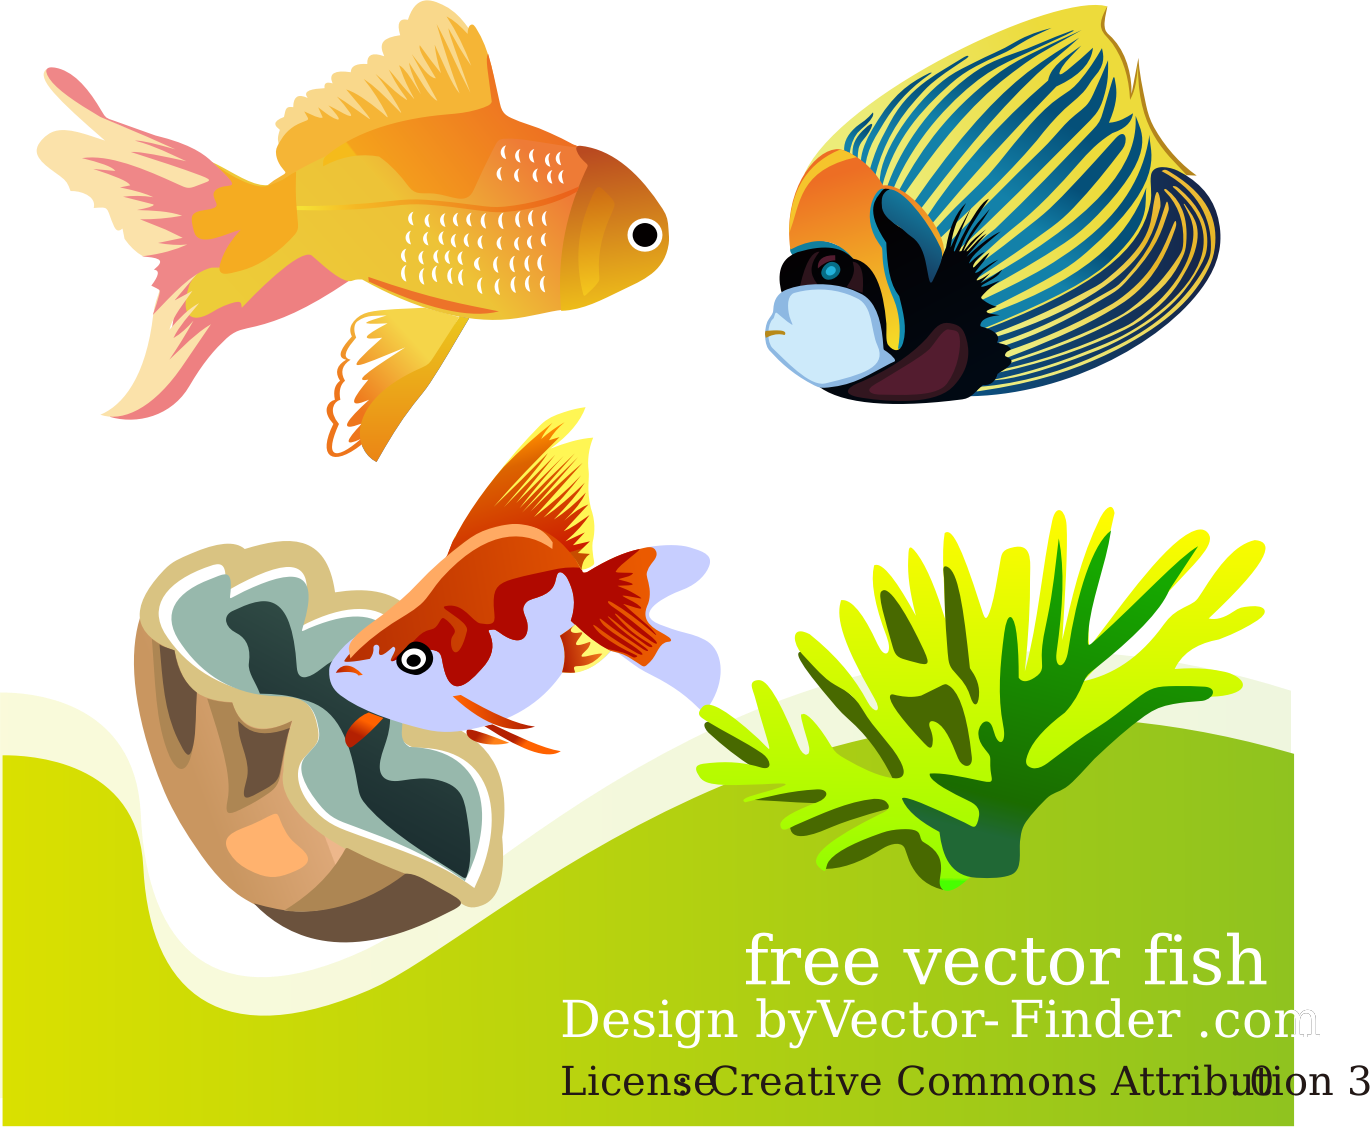 Free Vector Fish by vector-finder